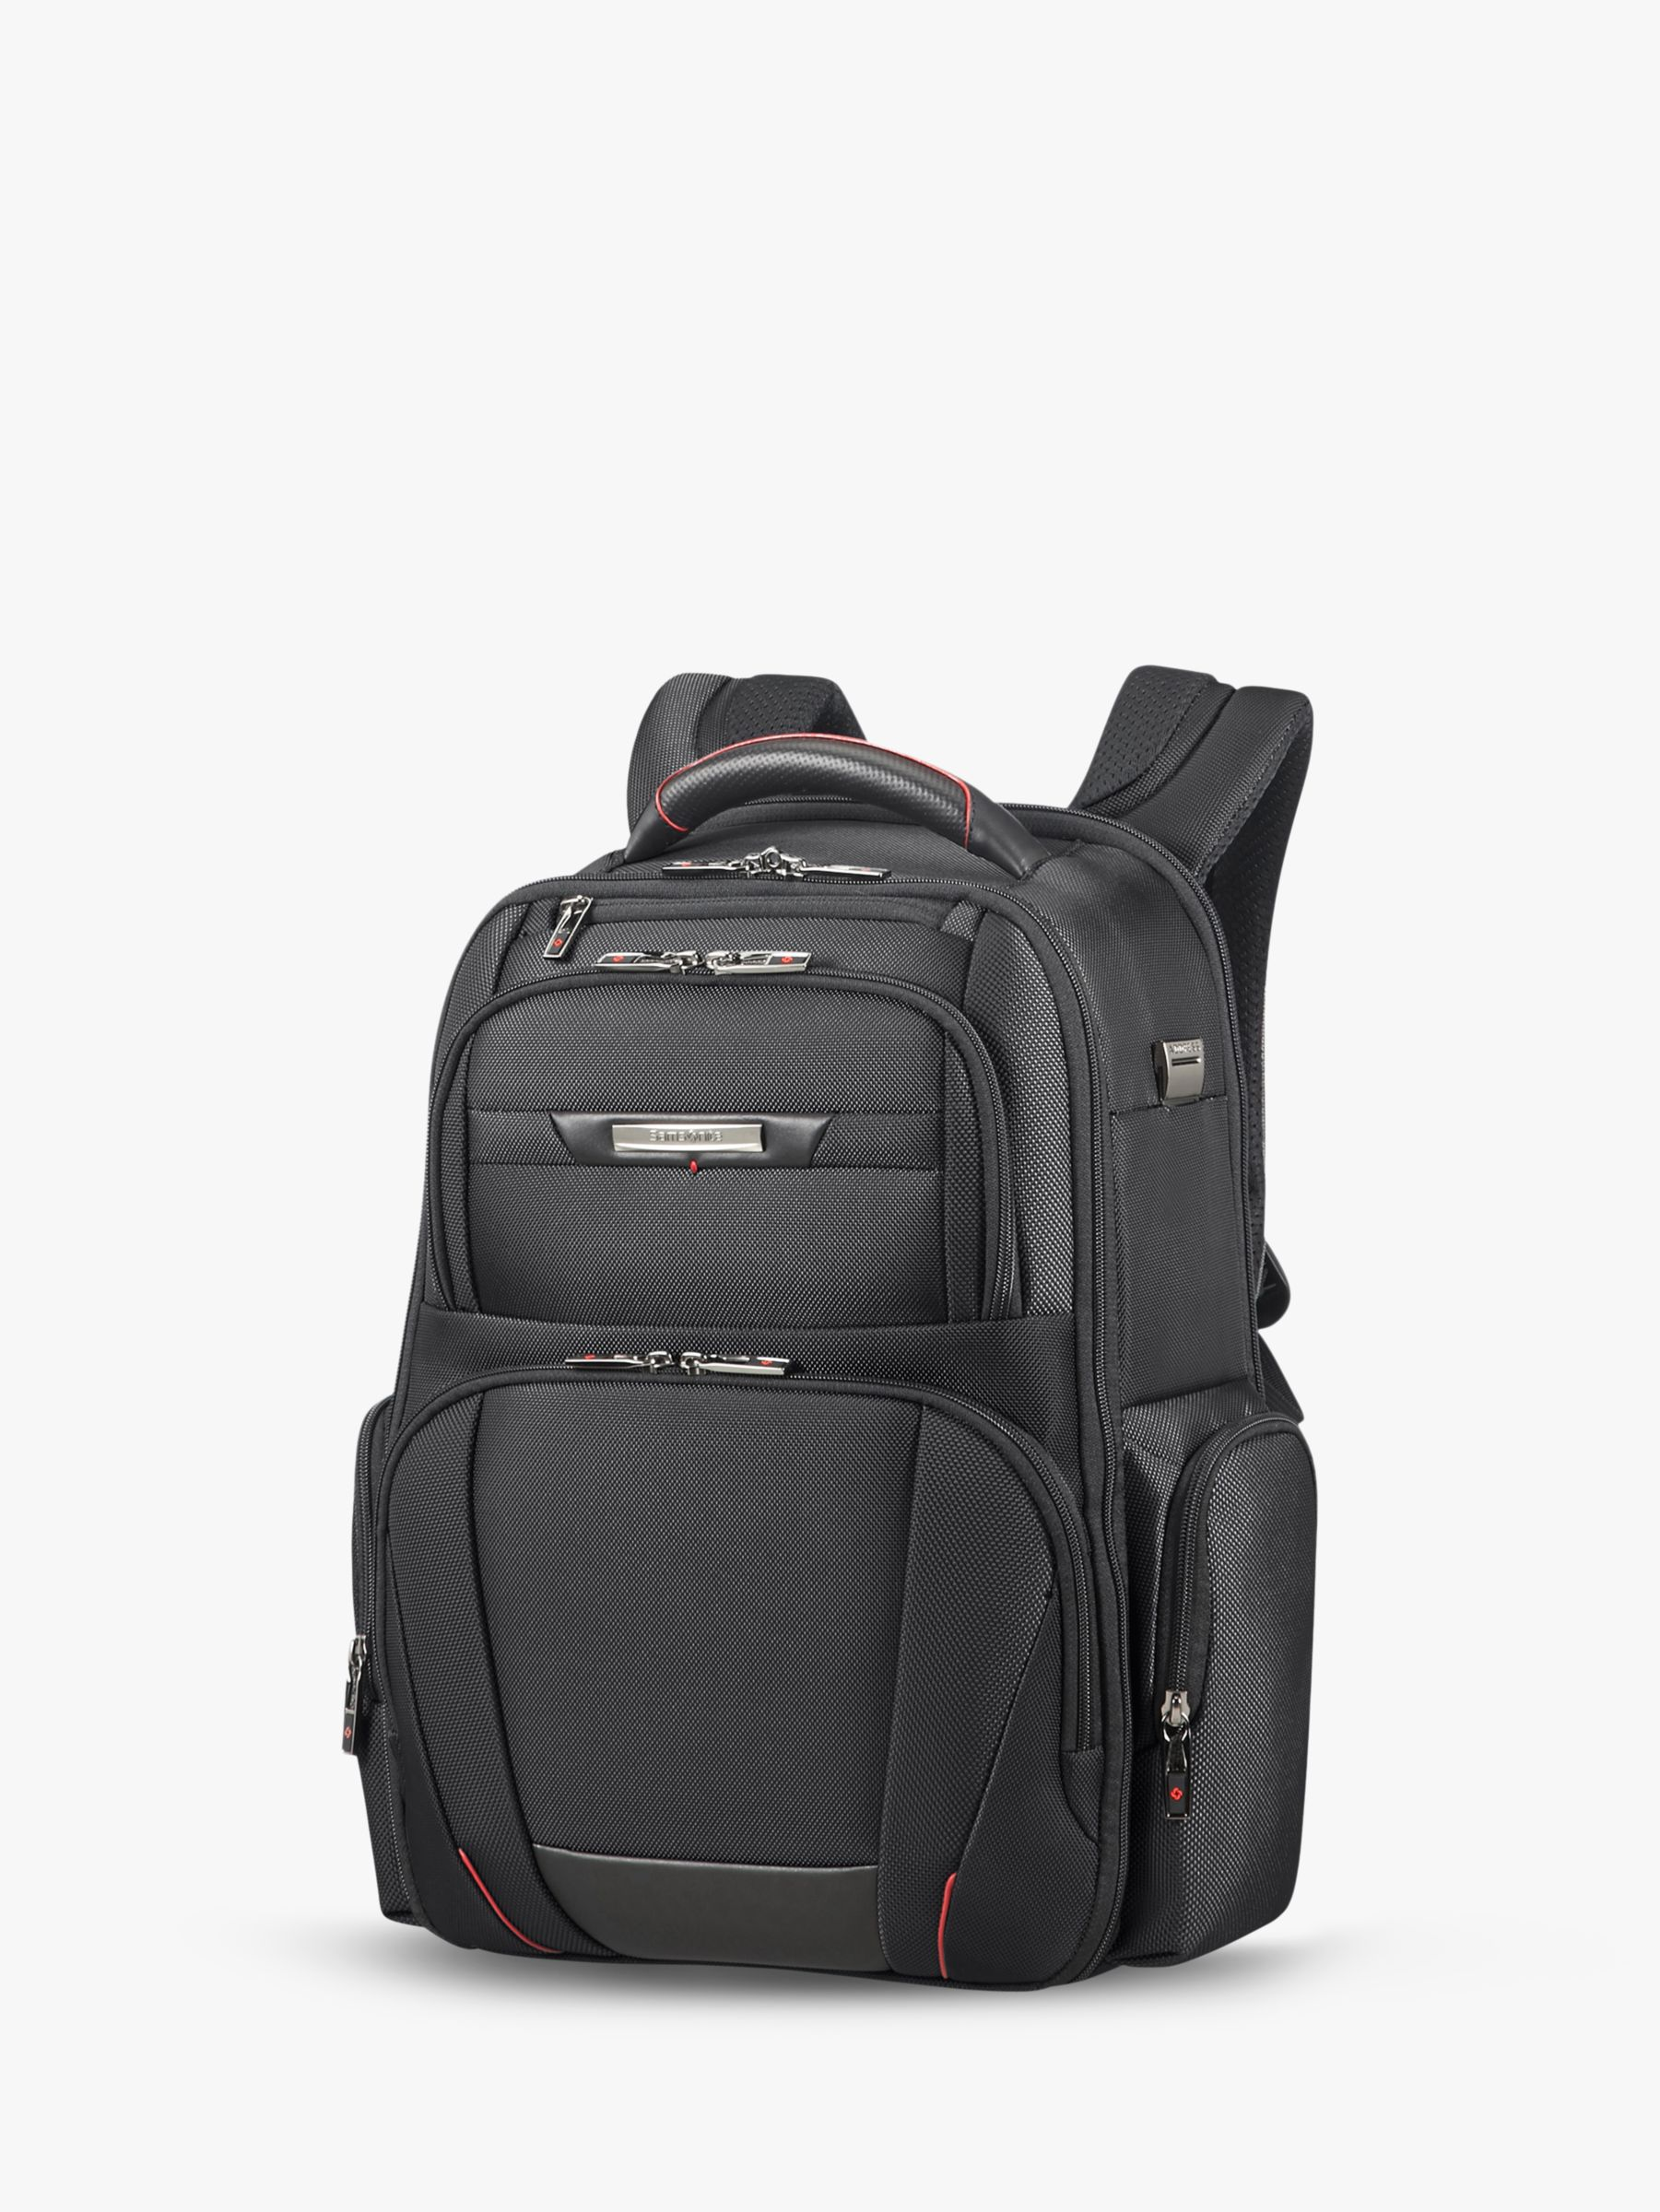 Samsonite Samsonite Pro Dlx 5 15 Laptop Backpack, Black